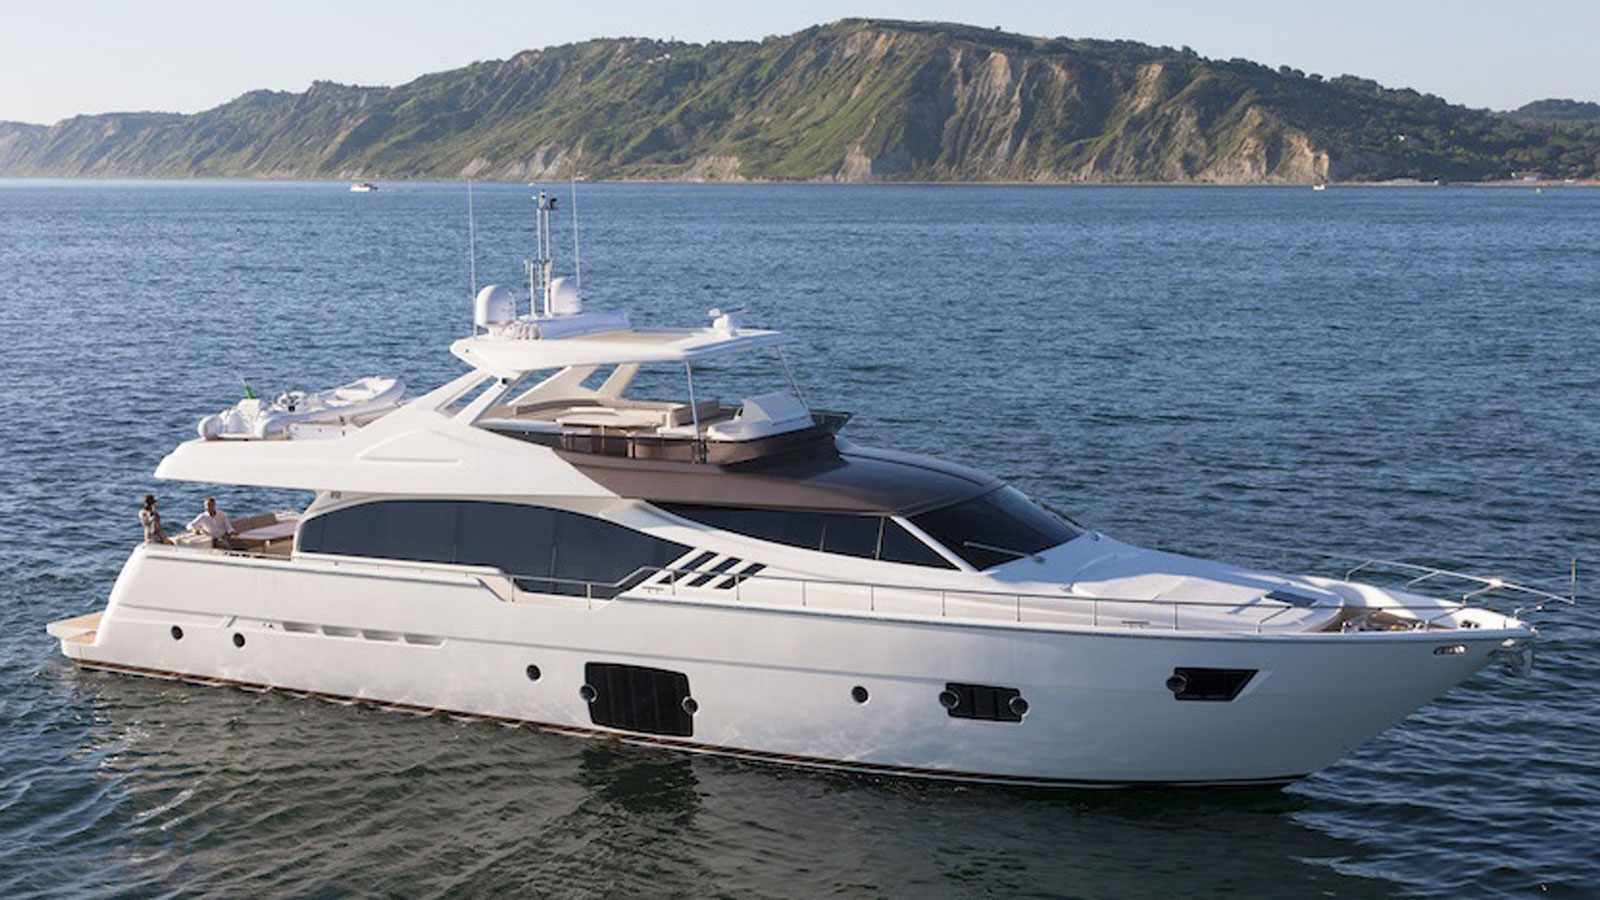 86' Ferretti Yacht Mirabilis for Sale with IYC profile at anchor